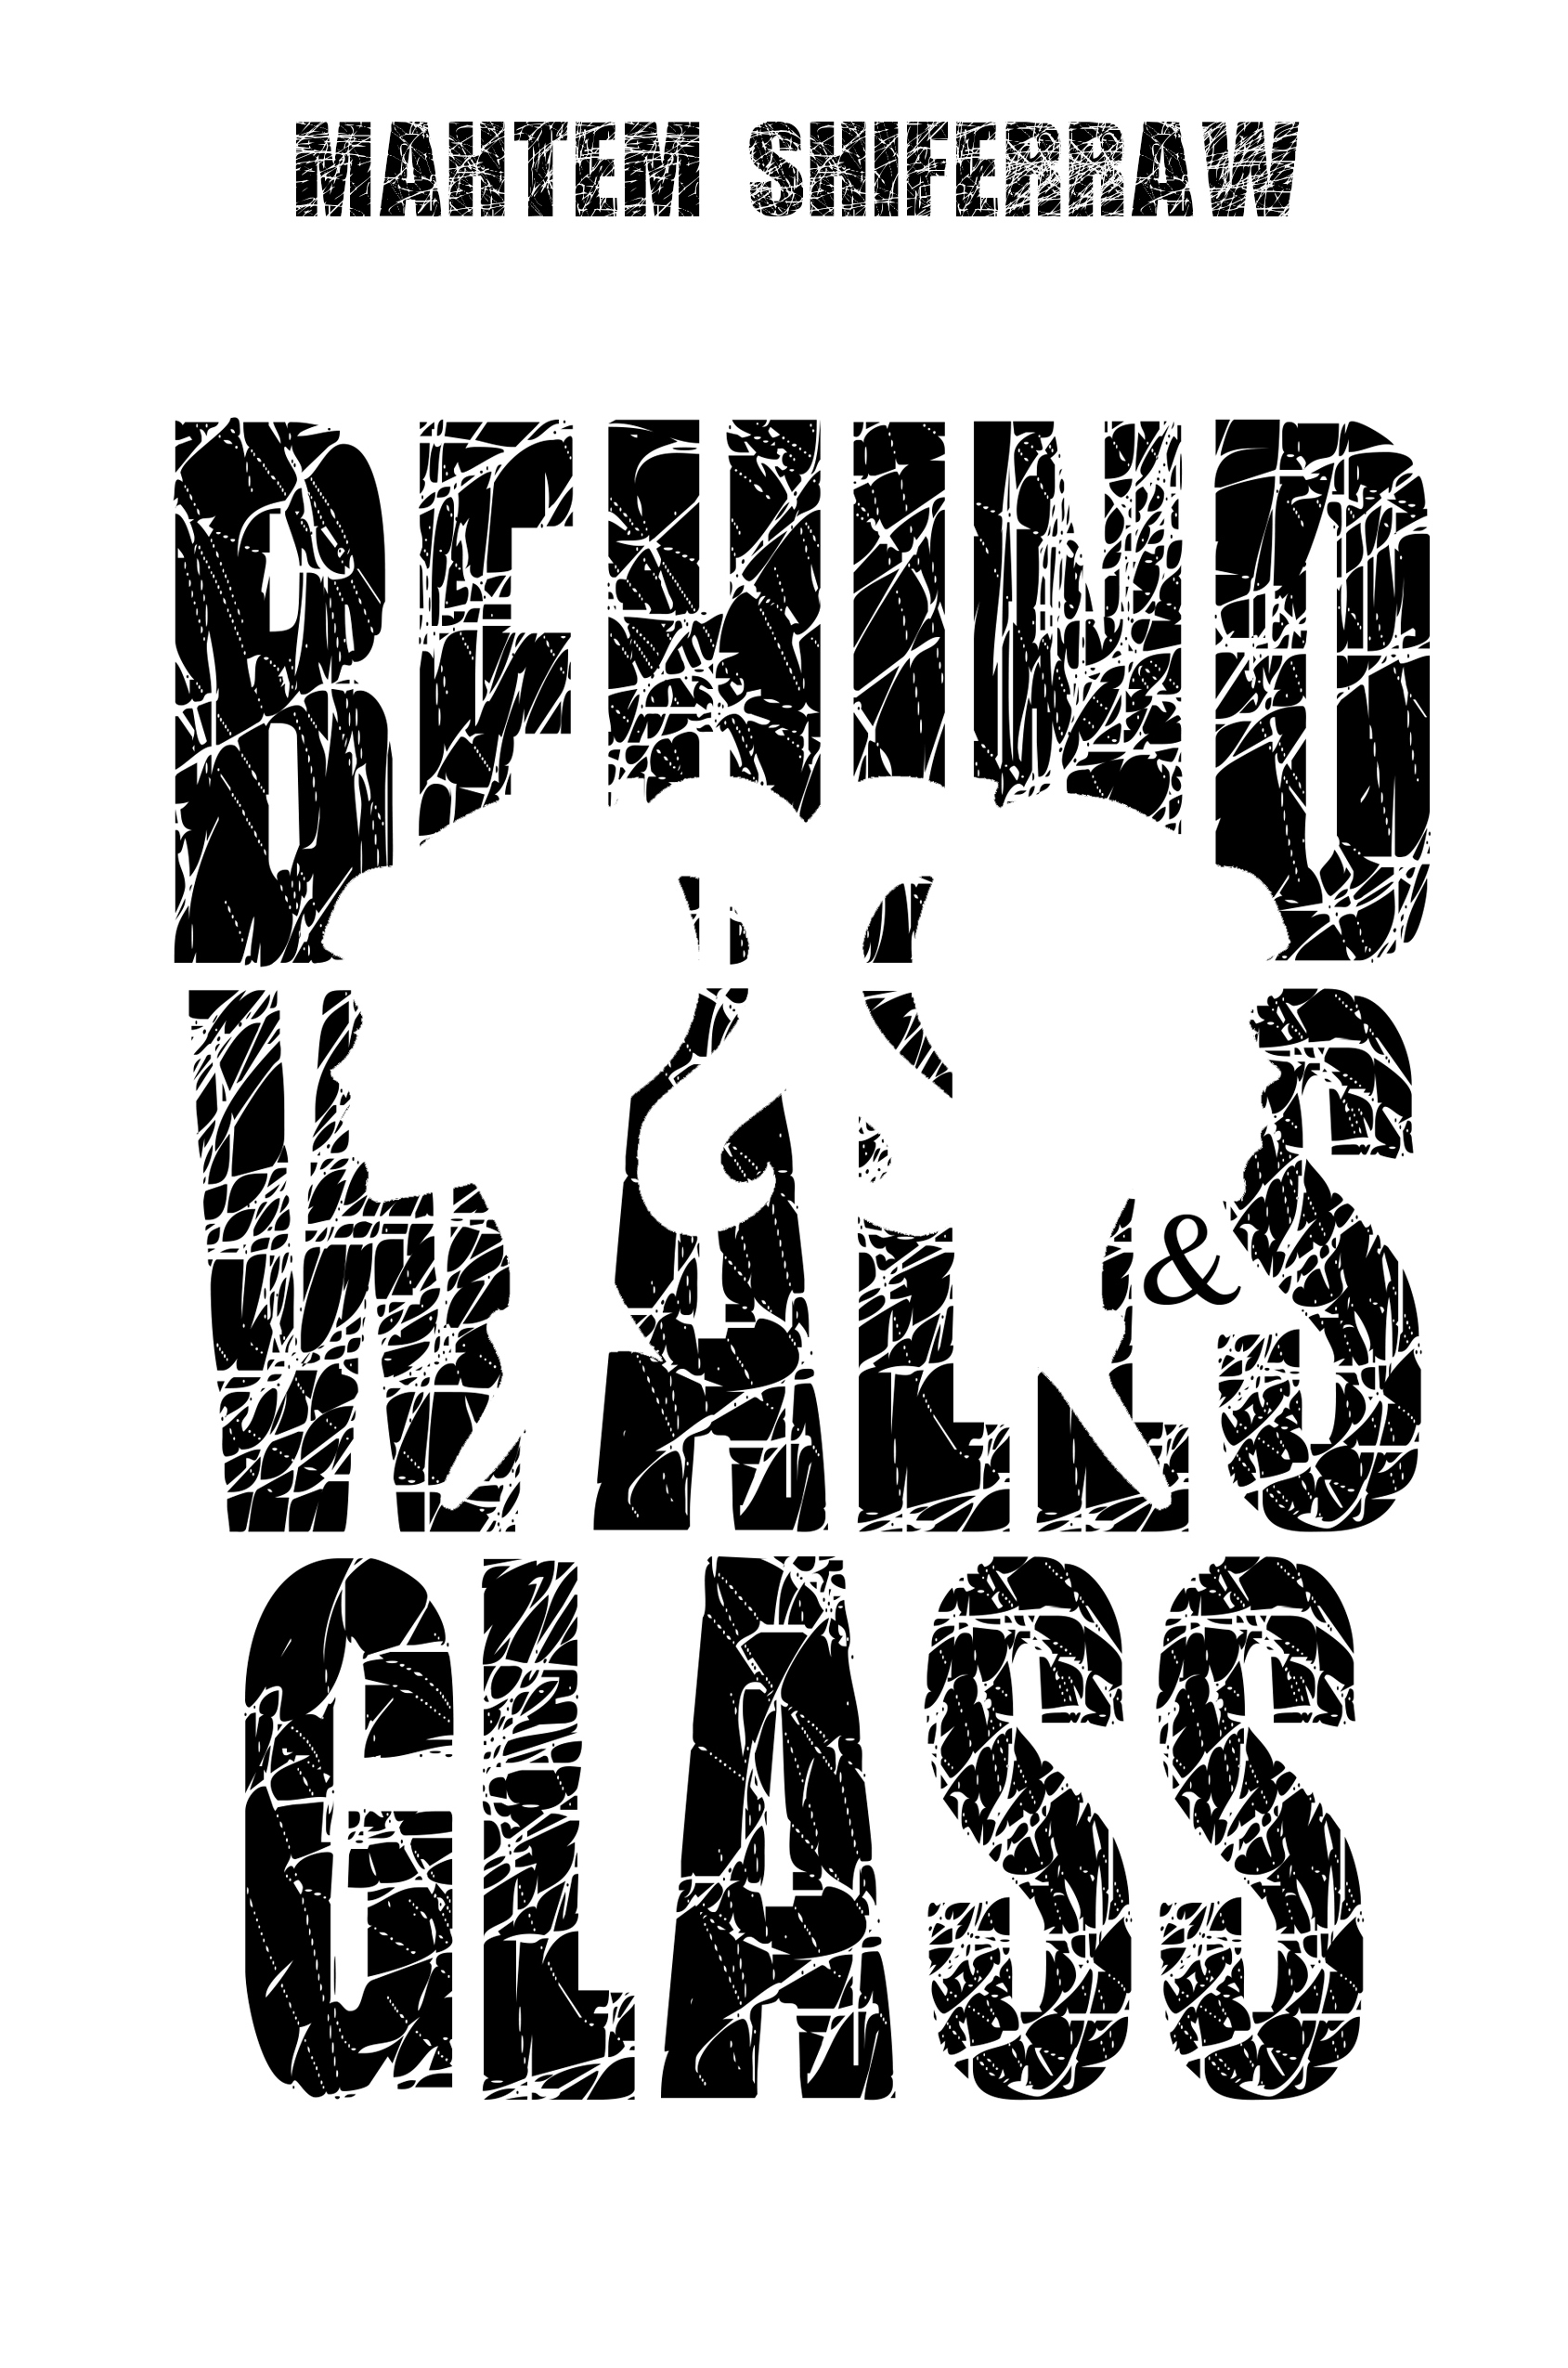 Behind Walls & Glass - Book Cover Final.jpg